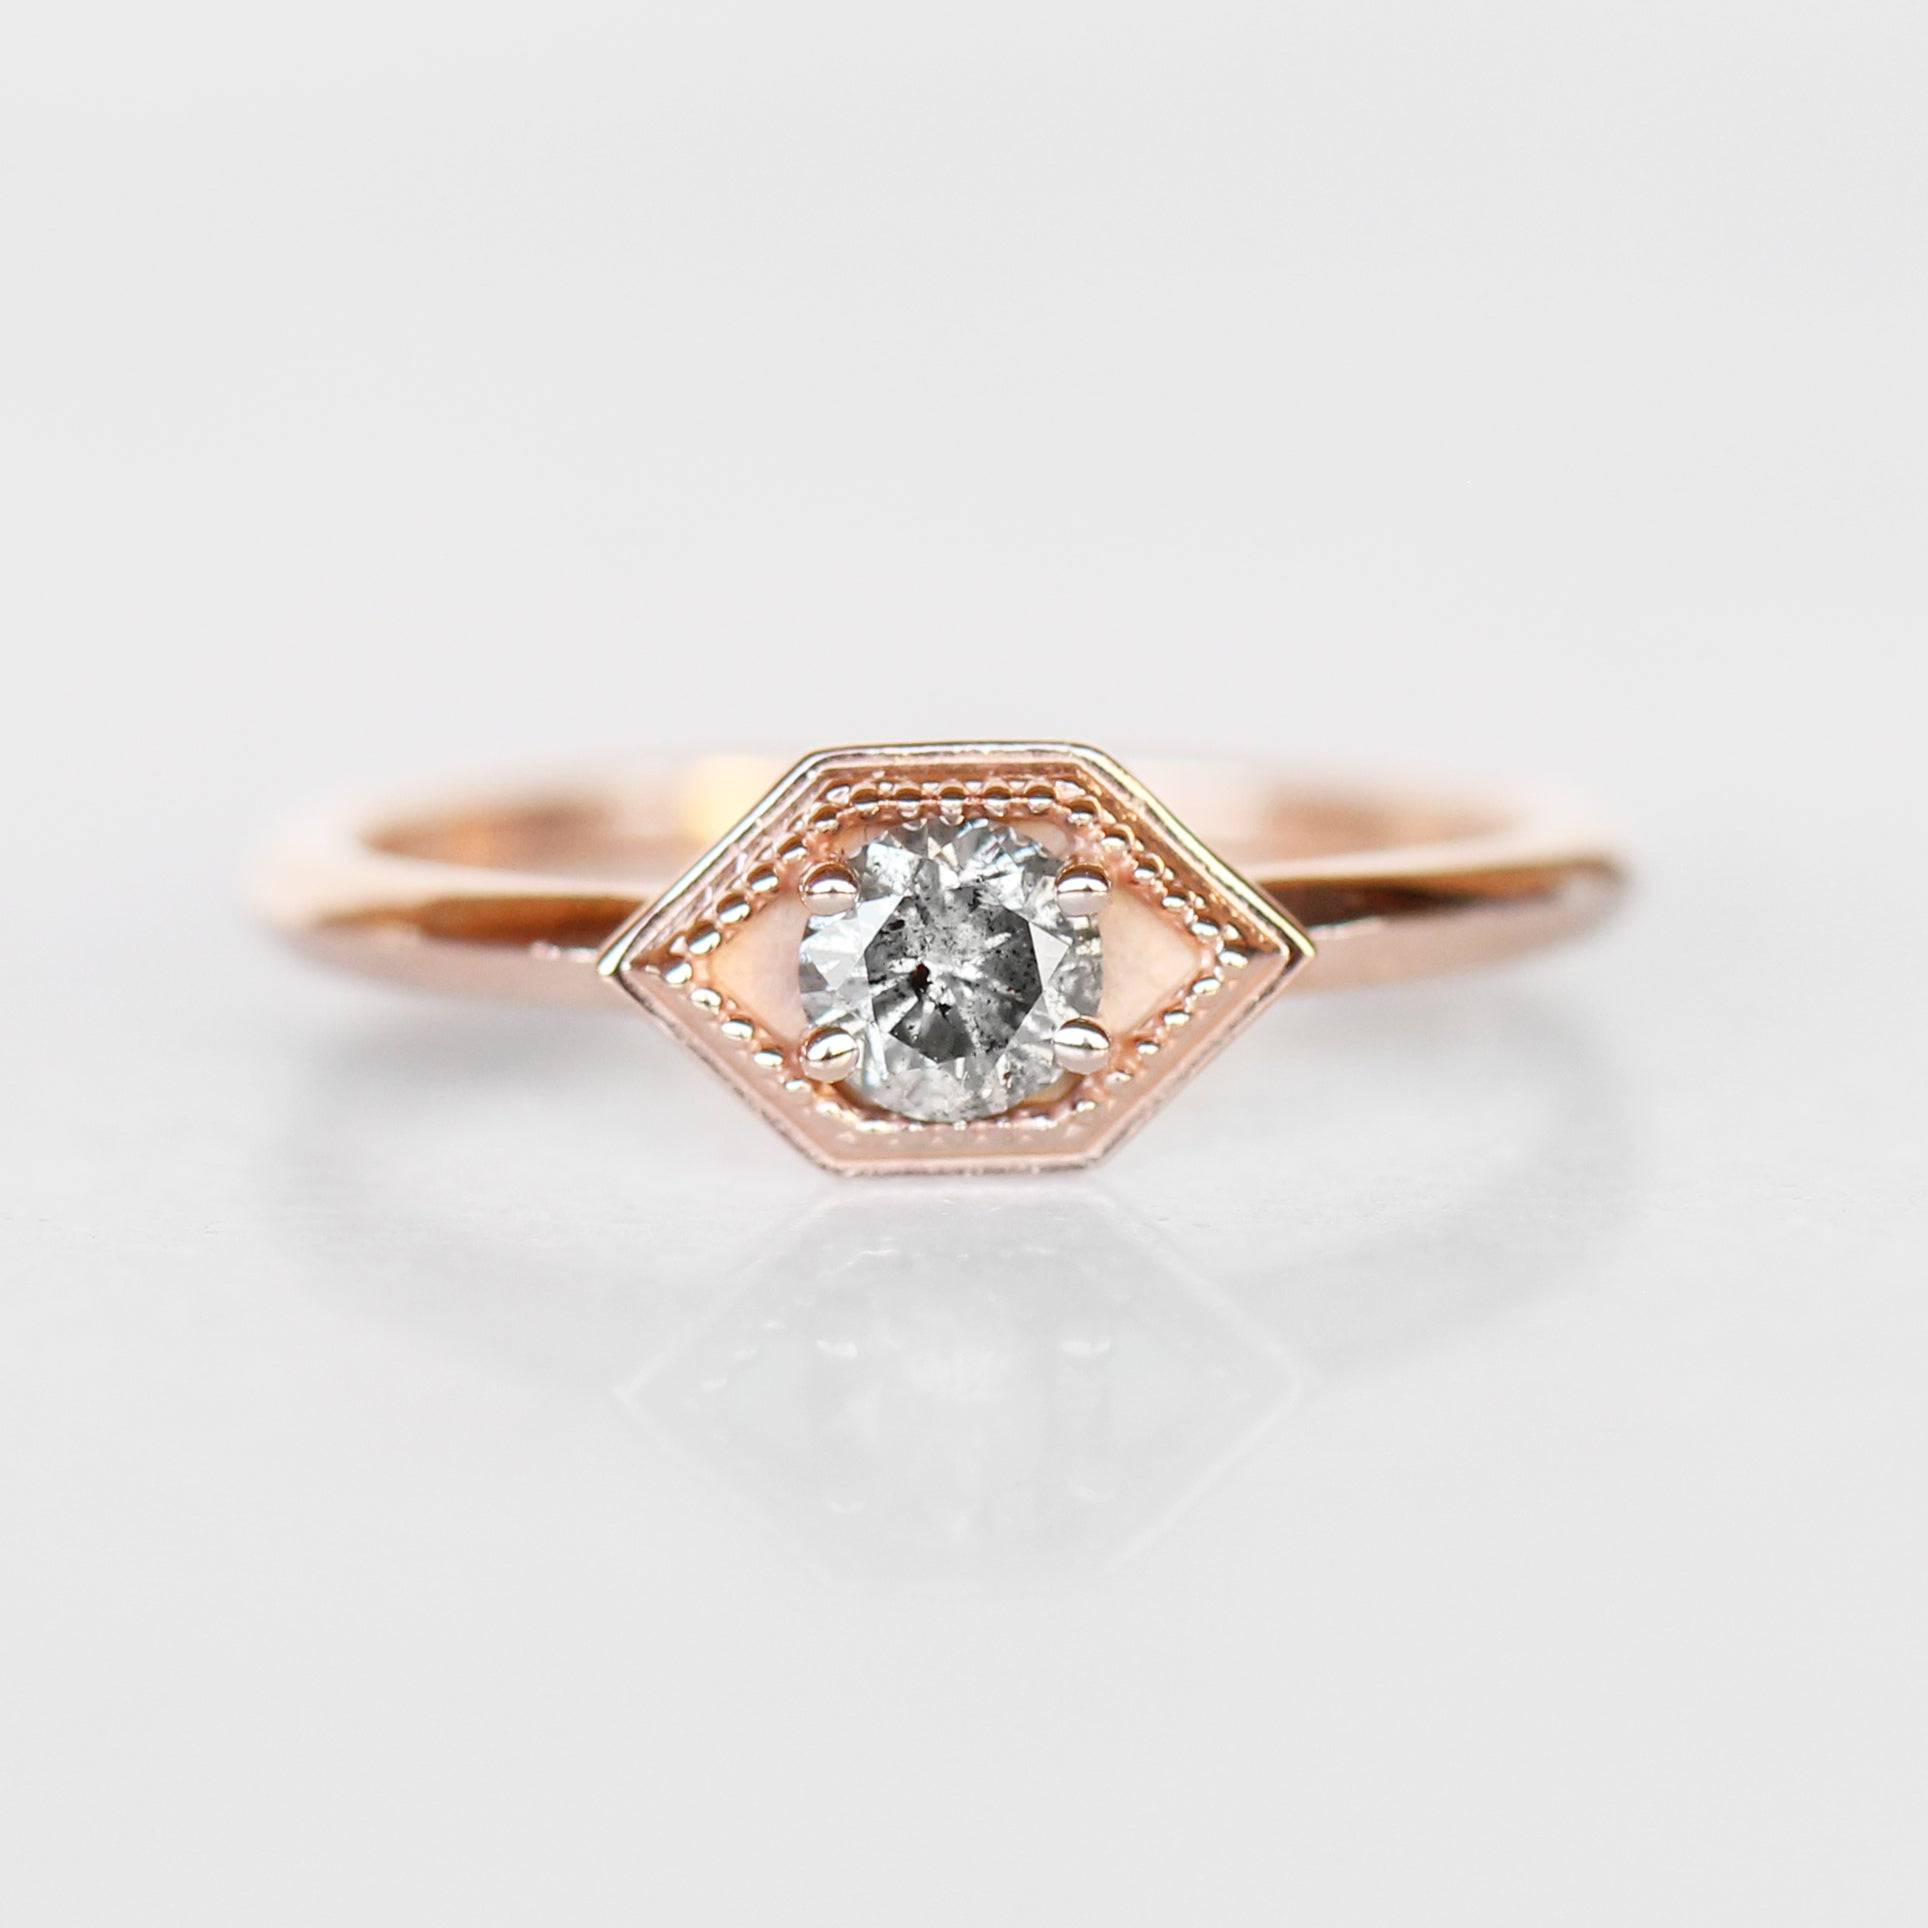 Melissa Ring with Gray Celestial Diamond in 10k Rose Gold - Made to Order - Celestial Diamonds ® by Midwinter Co.